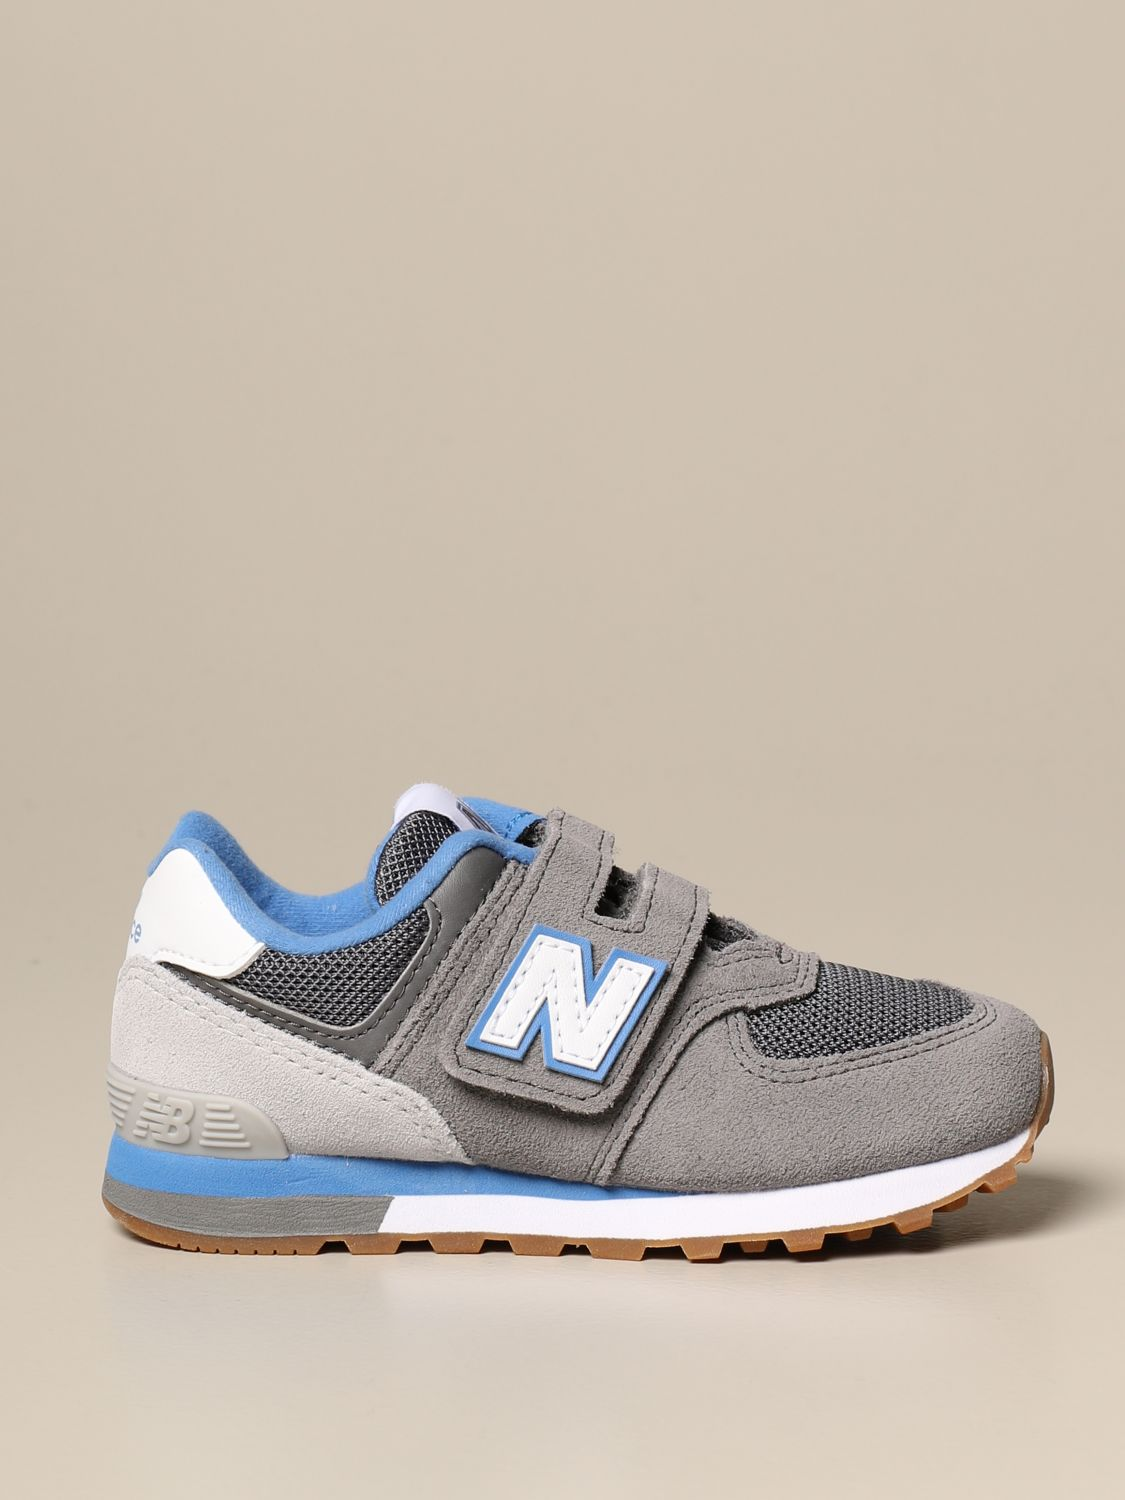 Sneakers 574 Sport Pack New Balance in camoscio e mesh